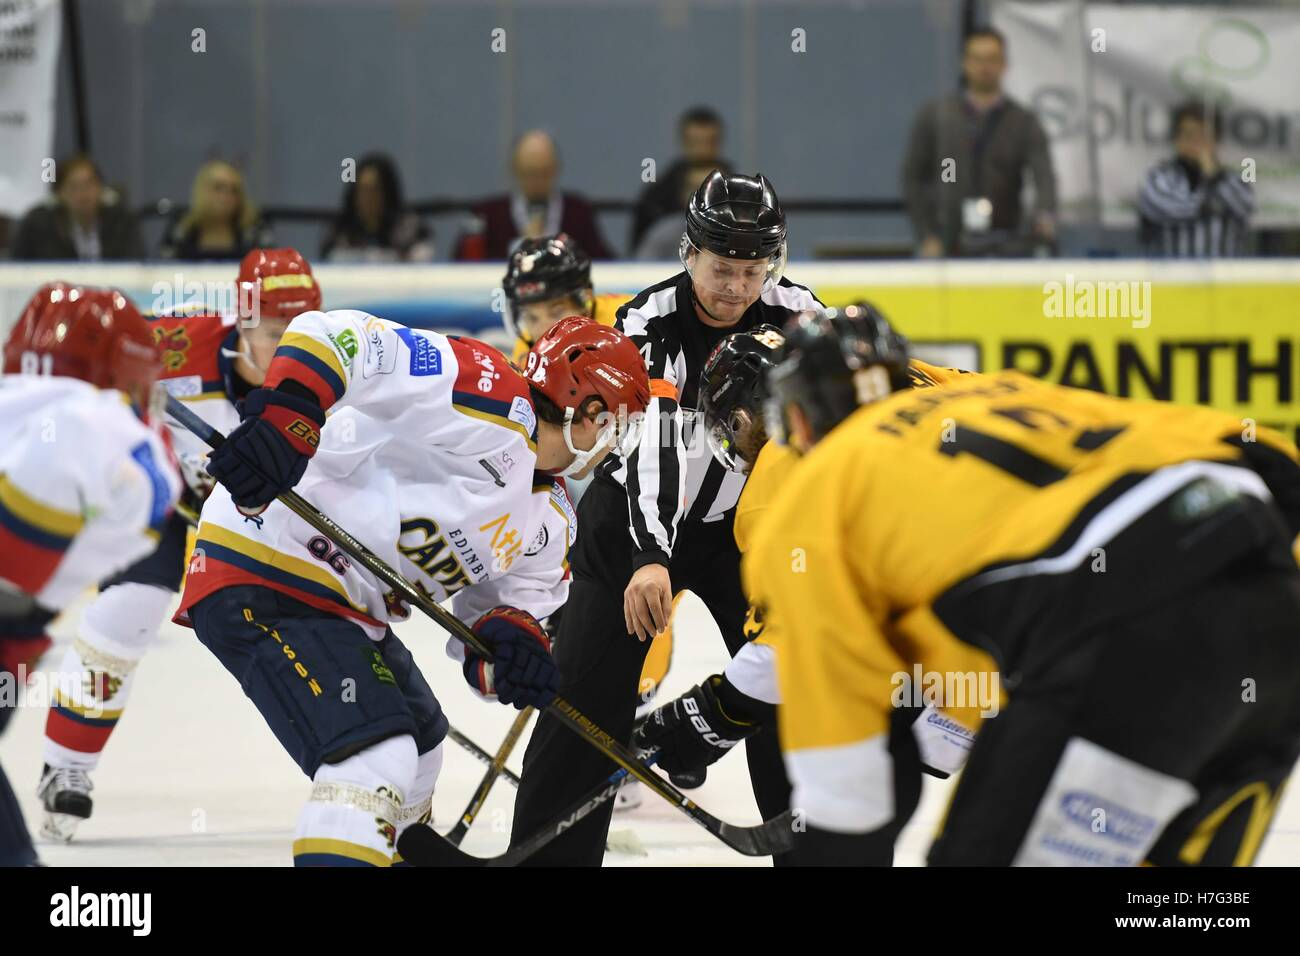 Ice Hockey official/referee dropping the puck during an opening face off - Stock Image